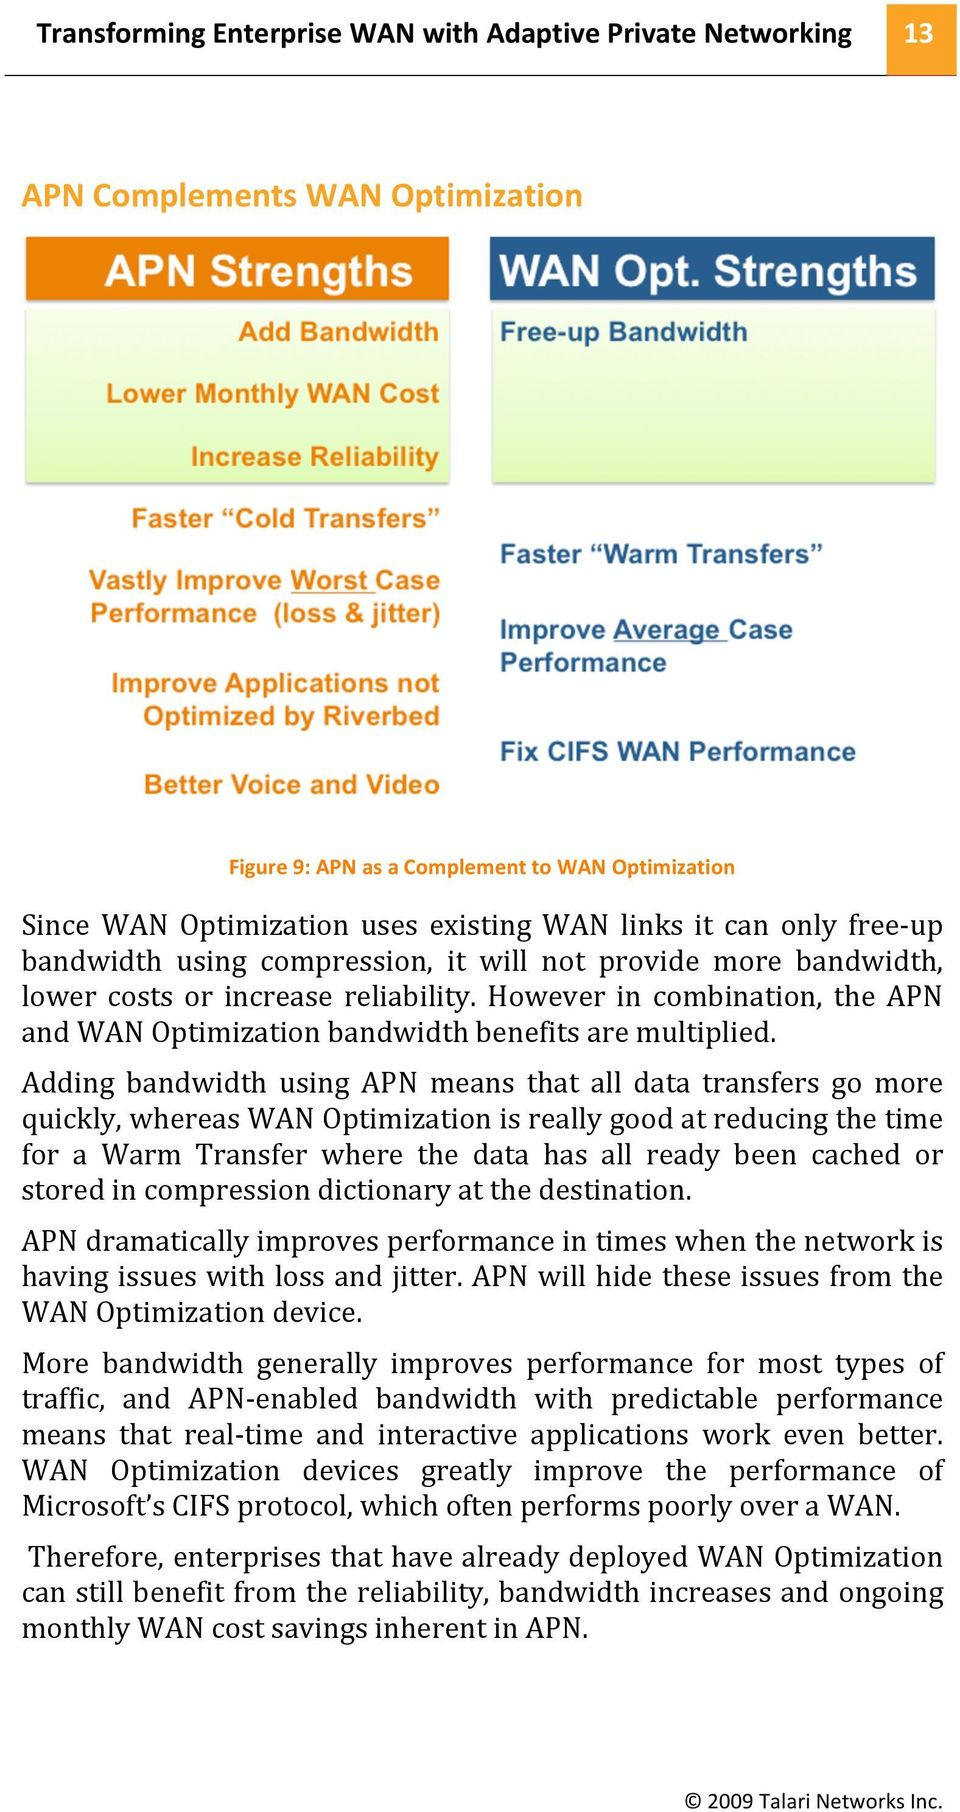 Adding bandwidth using APN means that all data transfers go more quickly,whereaswanoptimizationisreallygoodatreducingthetime for a Warm Transfer where the data has all ready been cached or